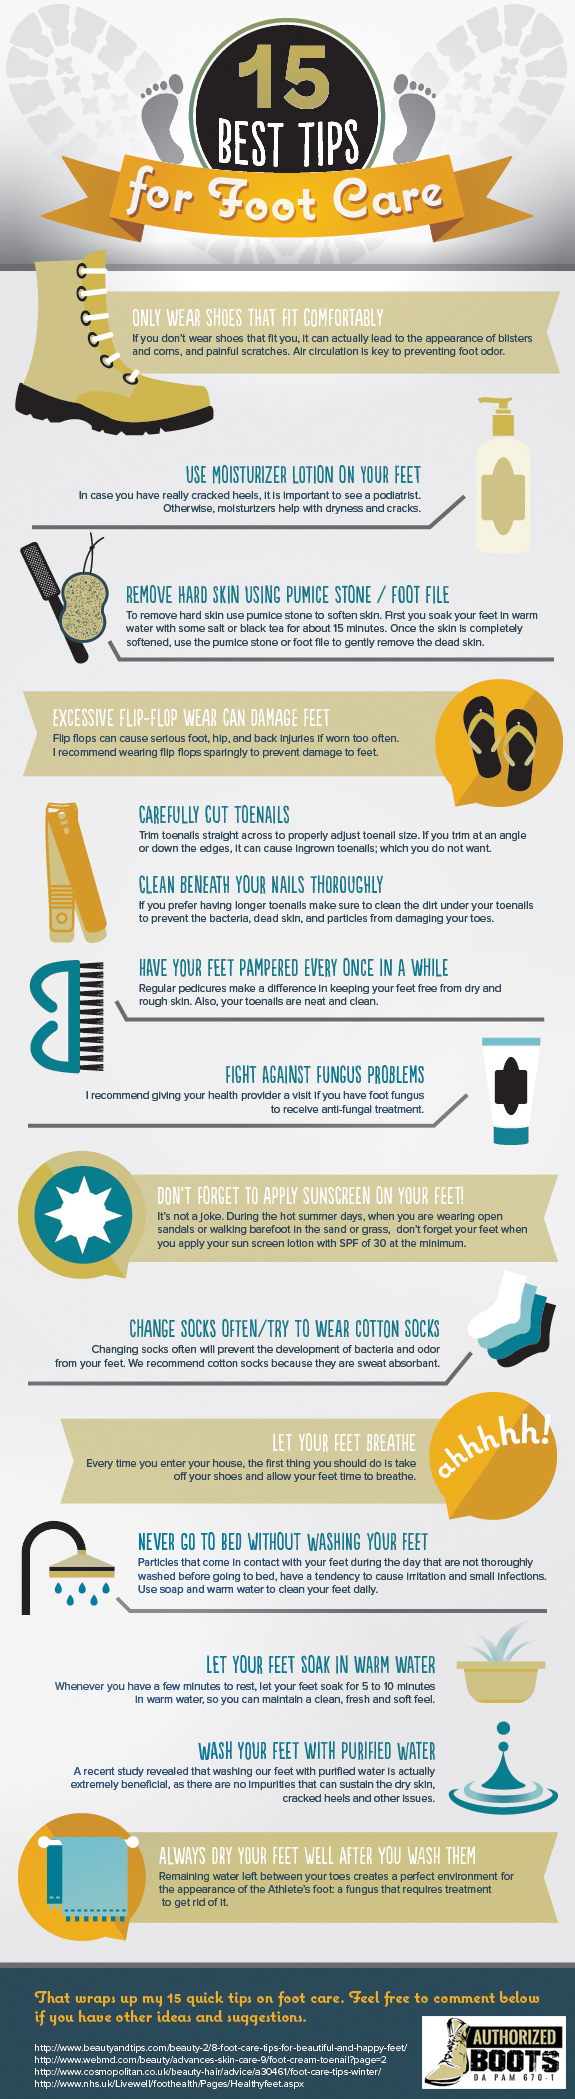 Top 15 Foot Care Tips